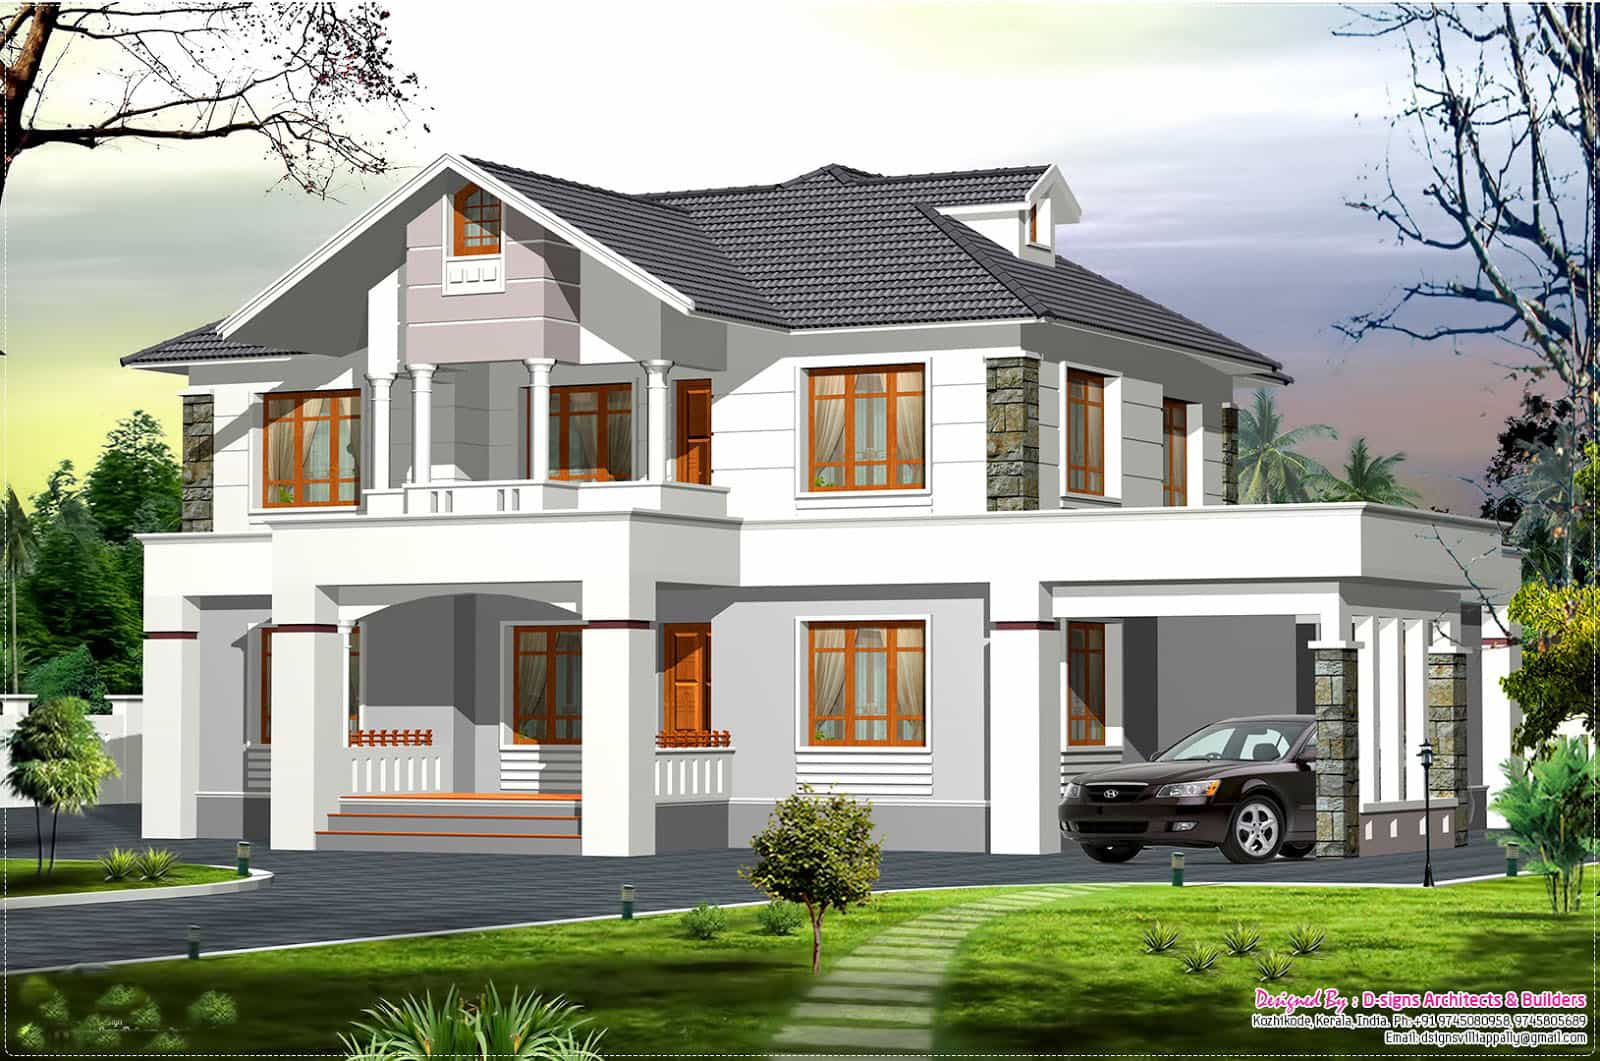 Two Storey Kerala House Designs - 2/7 - KeralaHousePlanner| Home ...